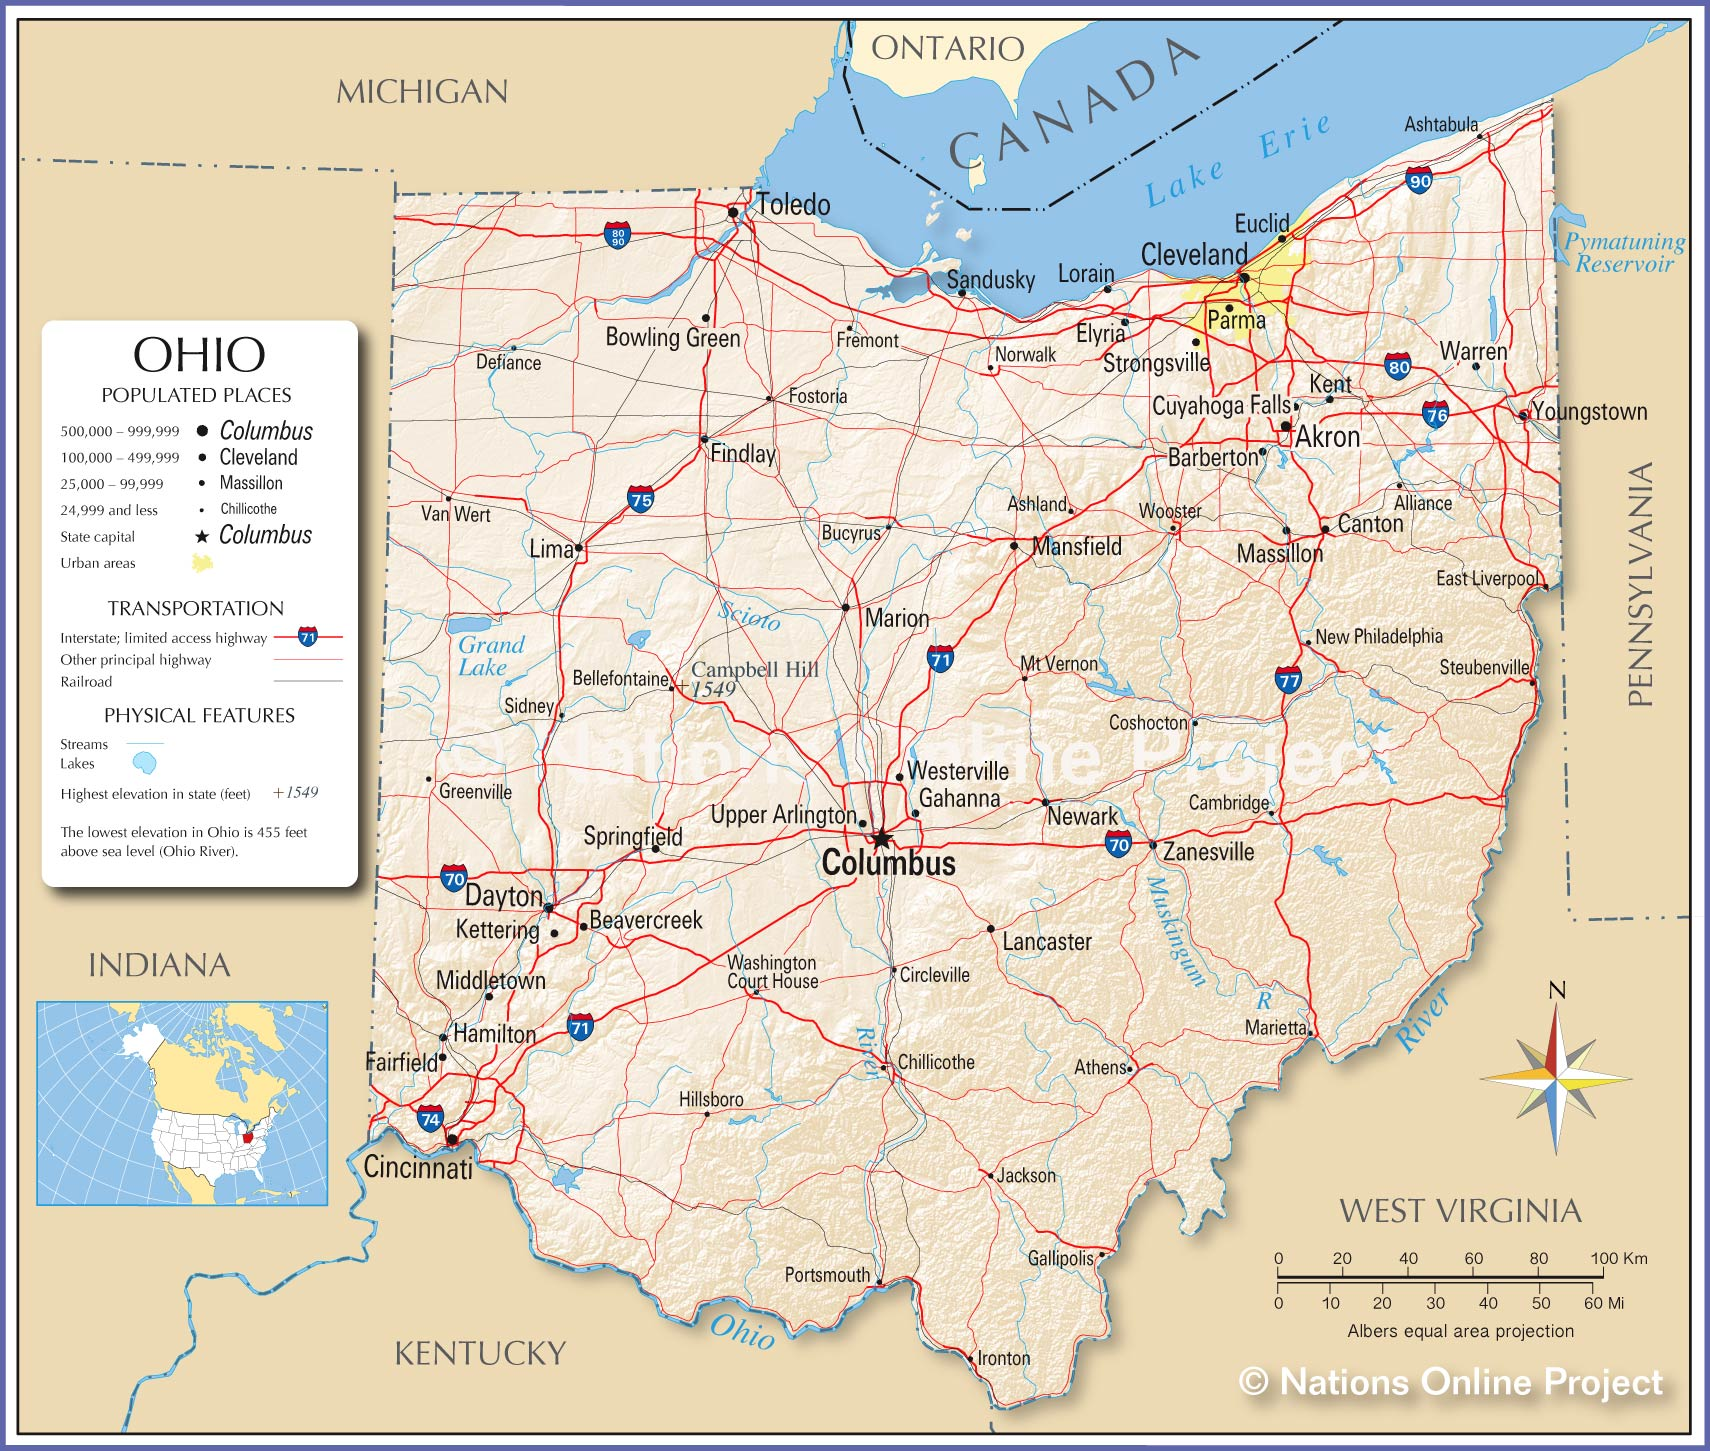 Reference Maps of Ohio, USA - Nations Online Project on map of ky and oh, map of atlanta, map of mid-atlantic, map of tennessee, map of chicago, ohio county kentucky, map of philippines, map indiana kentucky, map of houston, map of philadelphia, map of kansas city, map virginia kentucky, map illinois kentucky, map of new england, map of quebec, map of central europe, map of new jersey, map of new york city, map of southeast florida, map of midwest,